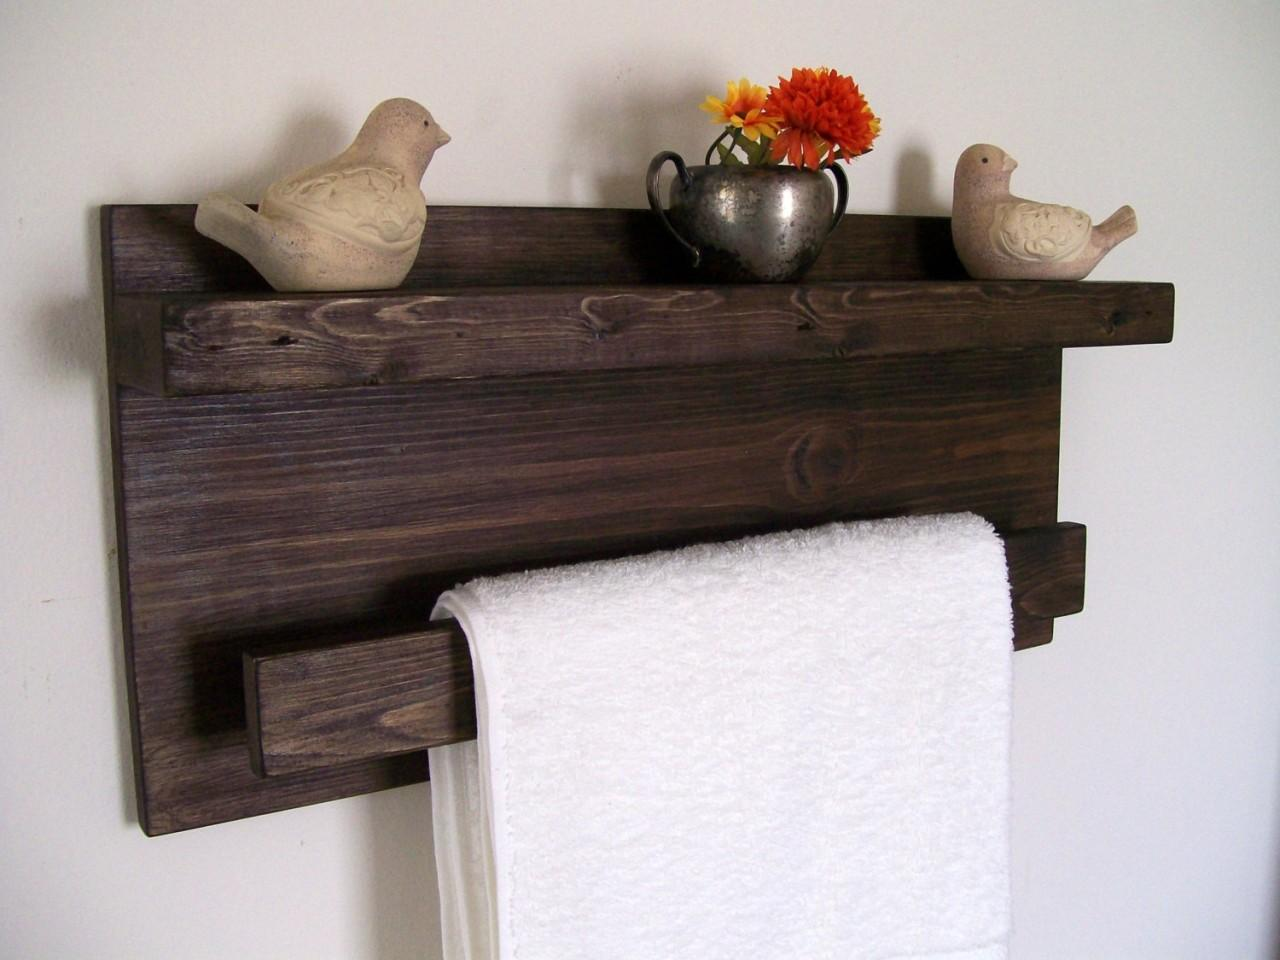 Bathroom Shelving Towel Bar Ideas